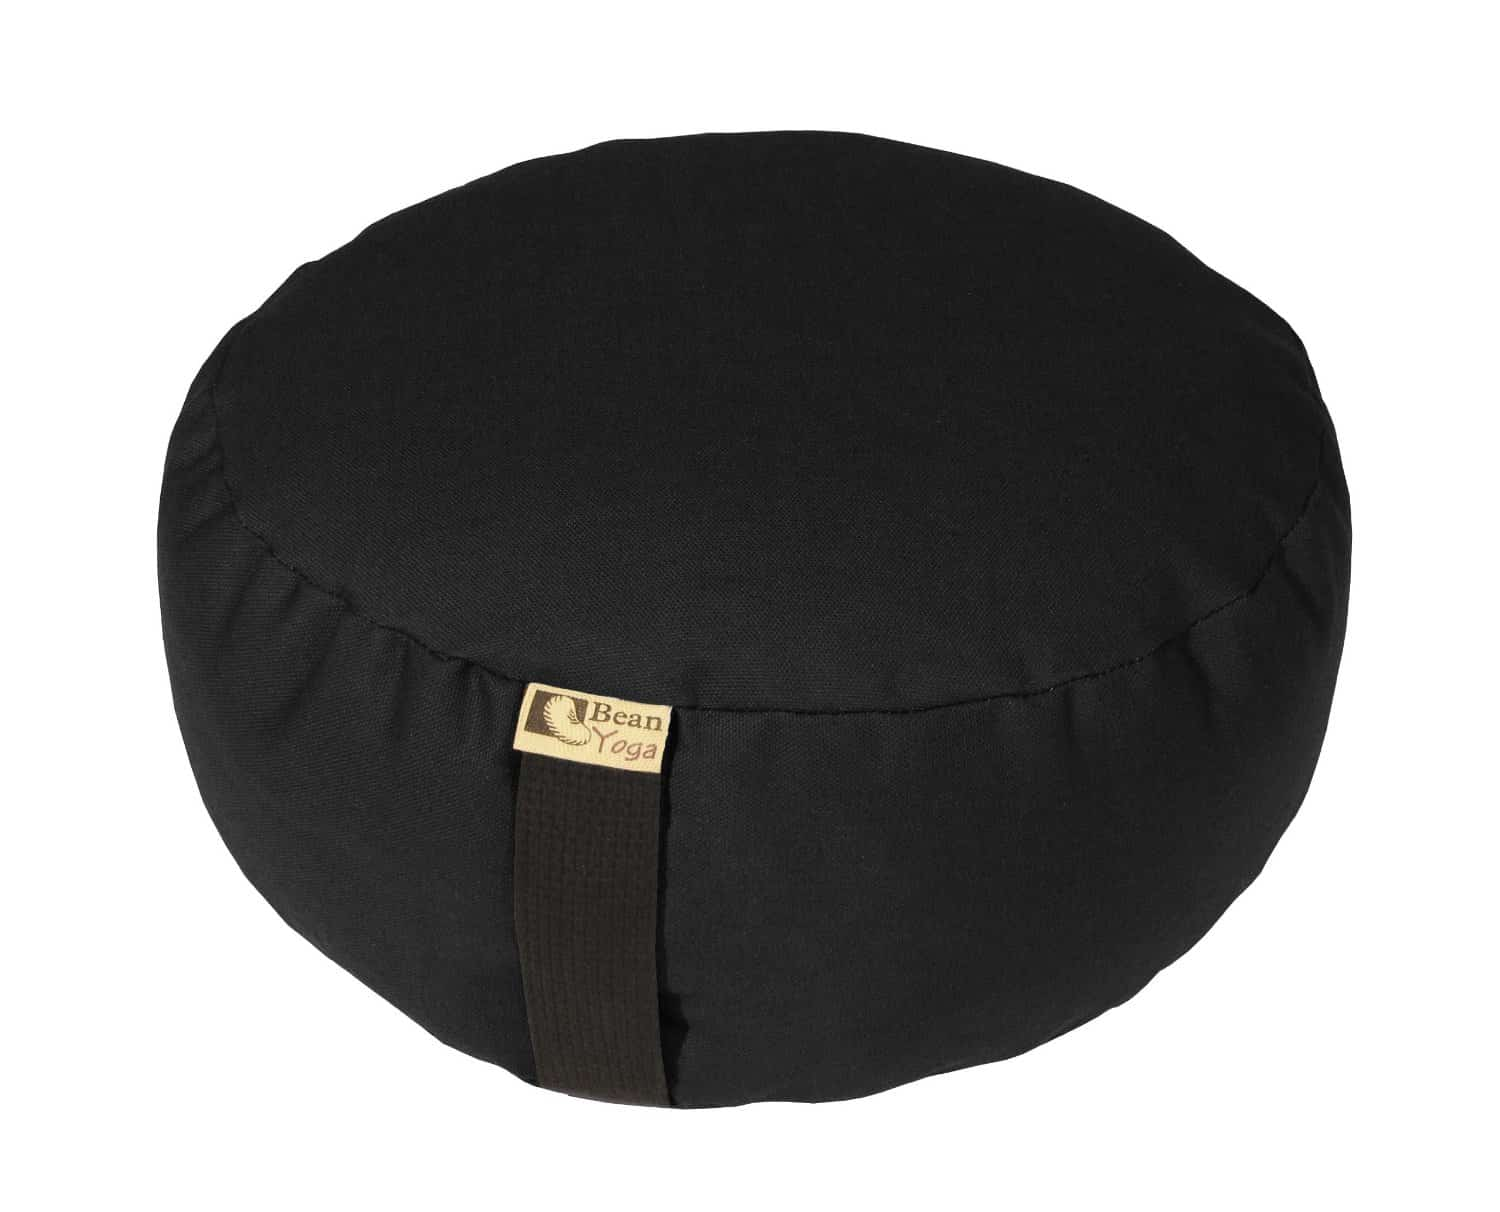 Best Meditation Chairs You Will Absolutely Love In - Best meditation cushions to buy right now